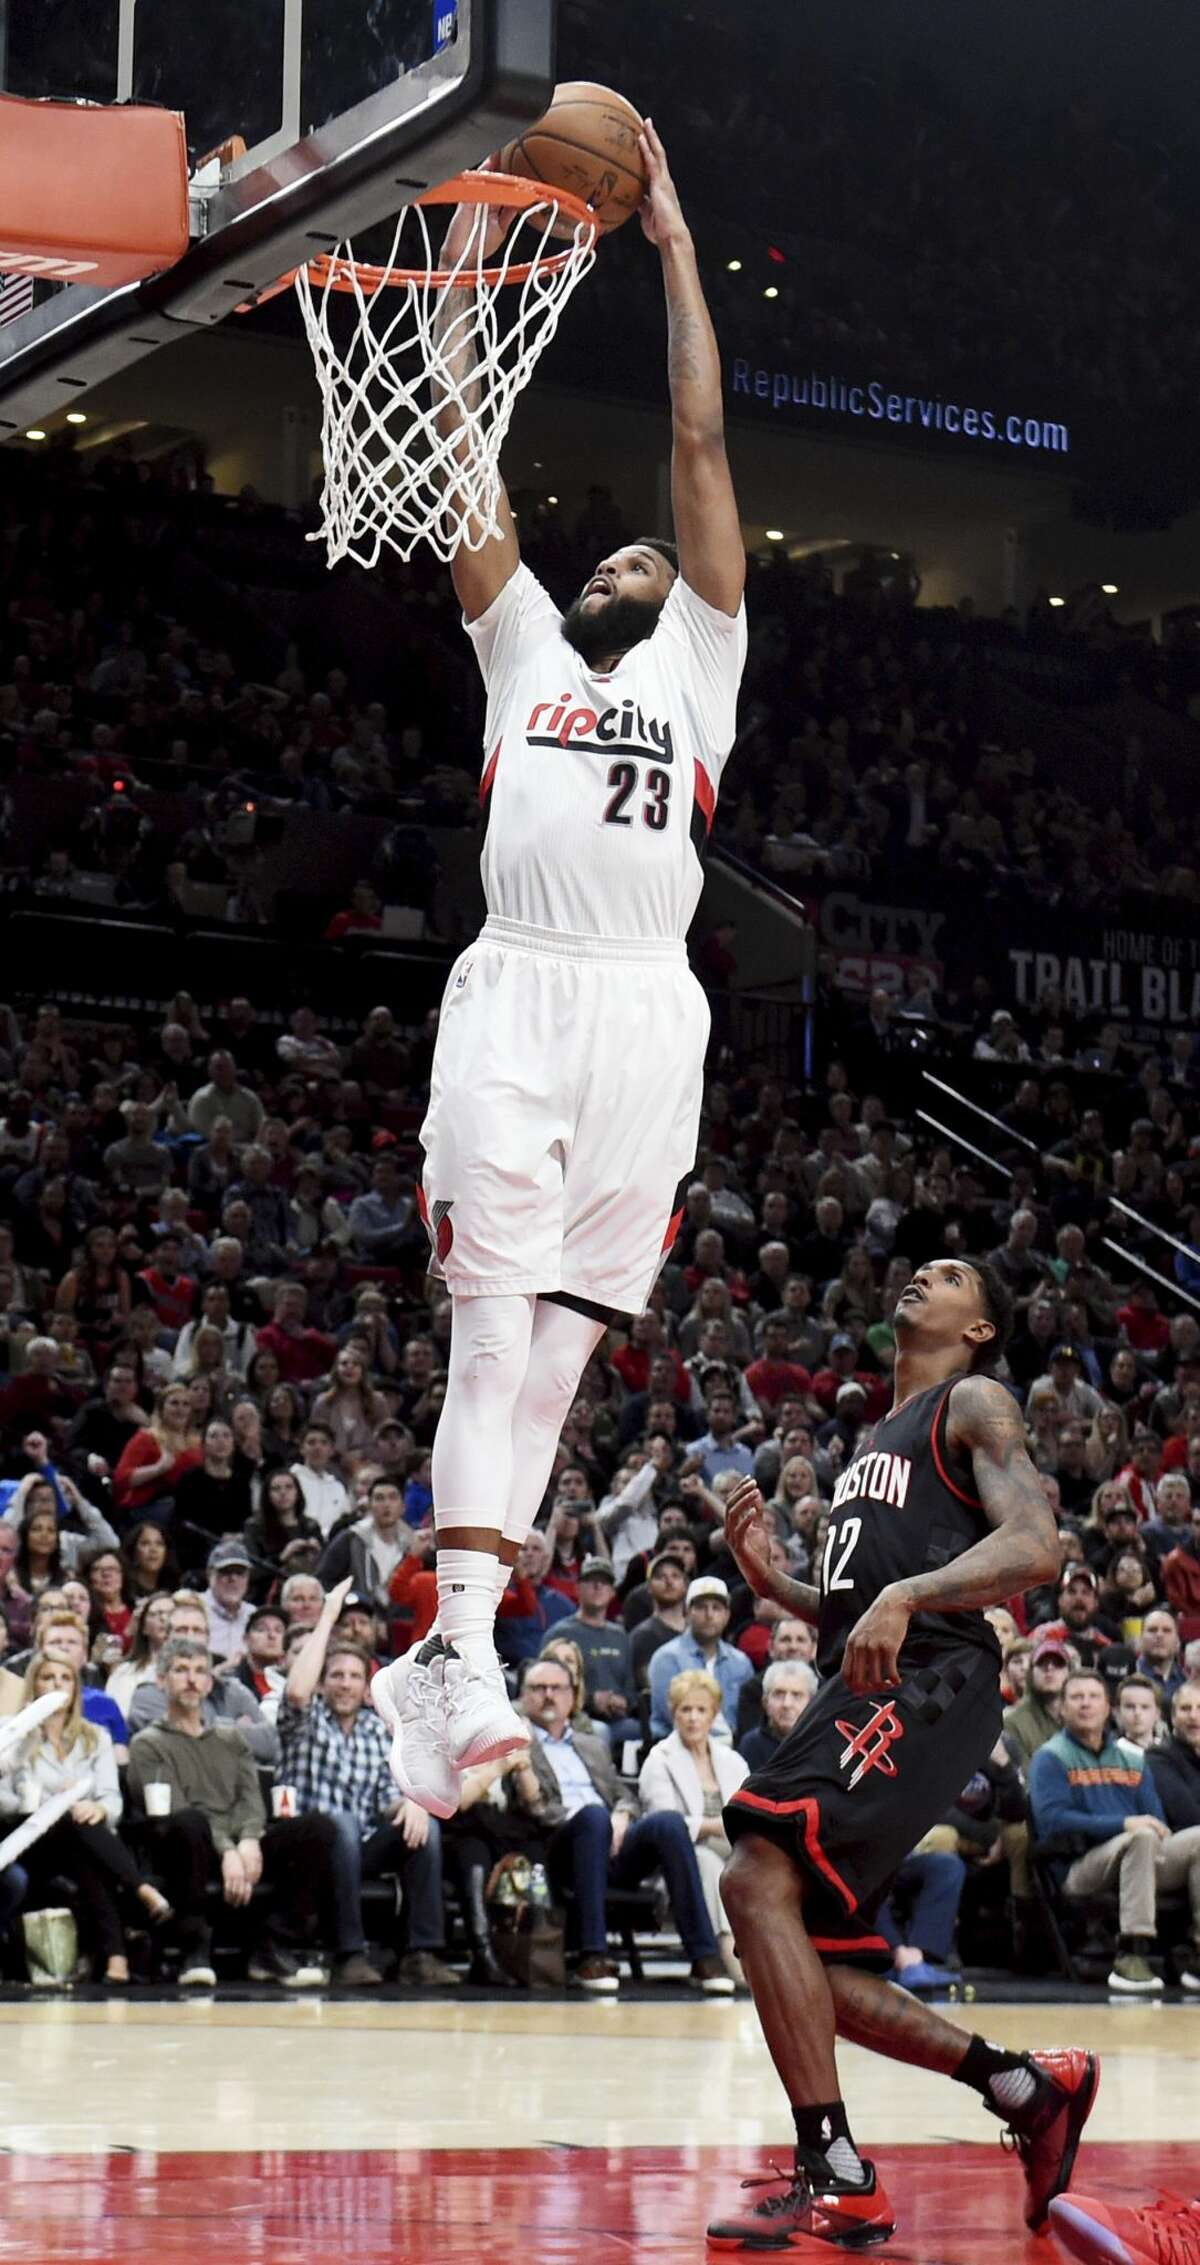 Portland Trail Blazers guard Allen Crabbe dunks the ball Houston Rockets guard Lou Williams during the fourth quarter of an NBA basketball game in Portland, Ore., Thursday, March 30, 2017. The Blazers won 117-107. (AP Photo/Steve Dykes)